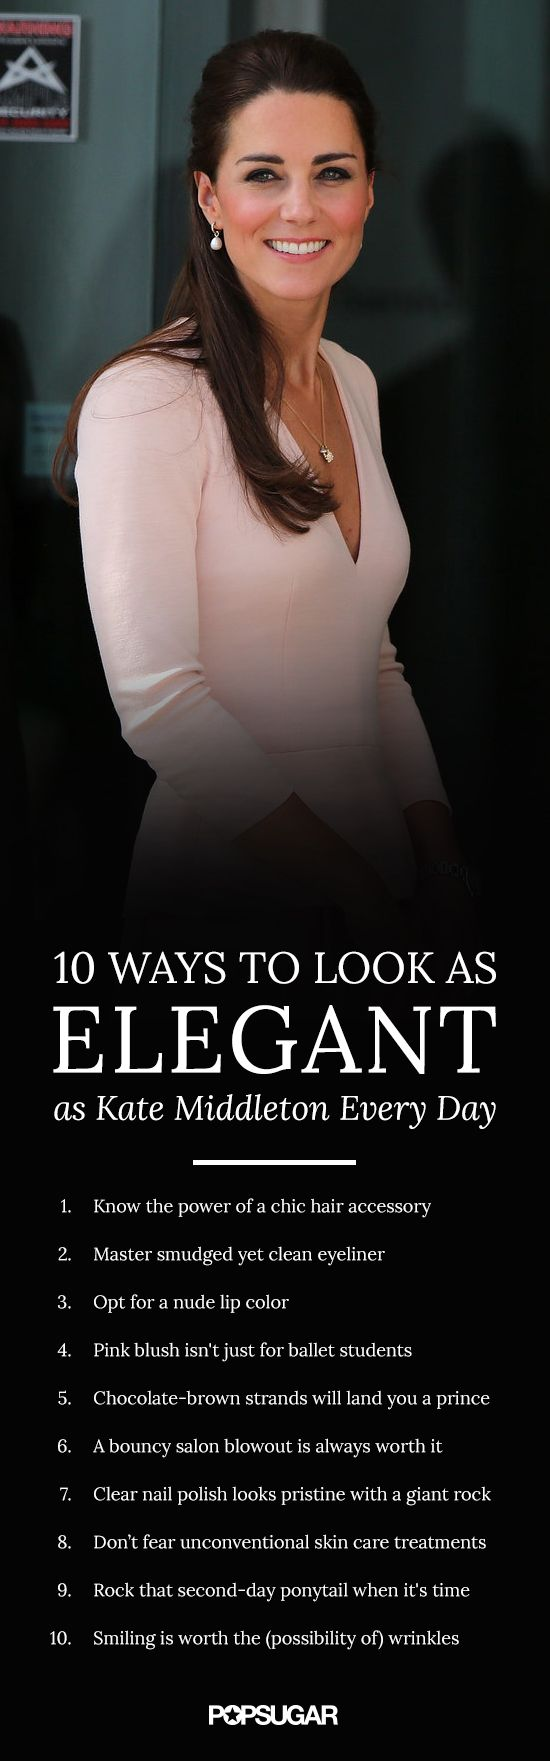 Follow these tricks to look as gorgeous as Kate Middleton | The House of Beccaria#